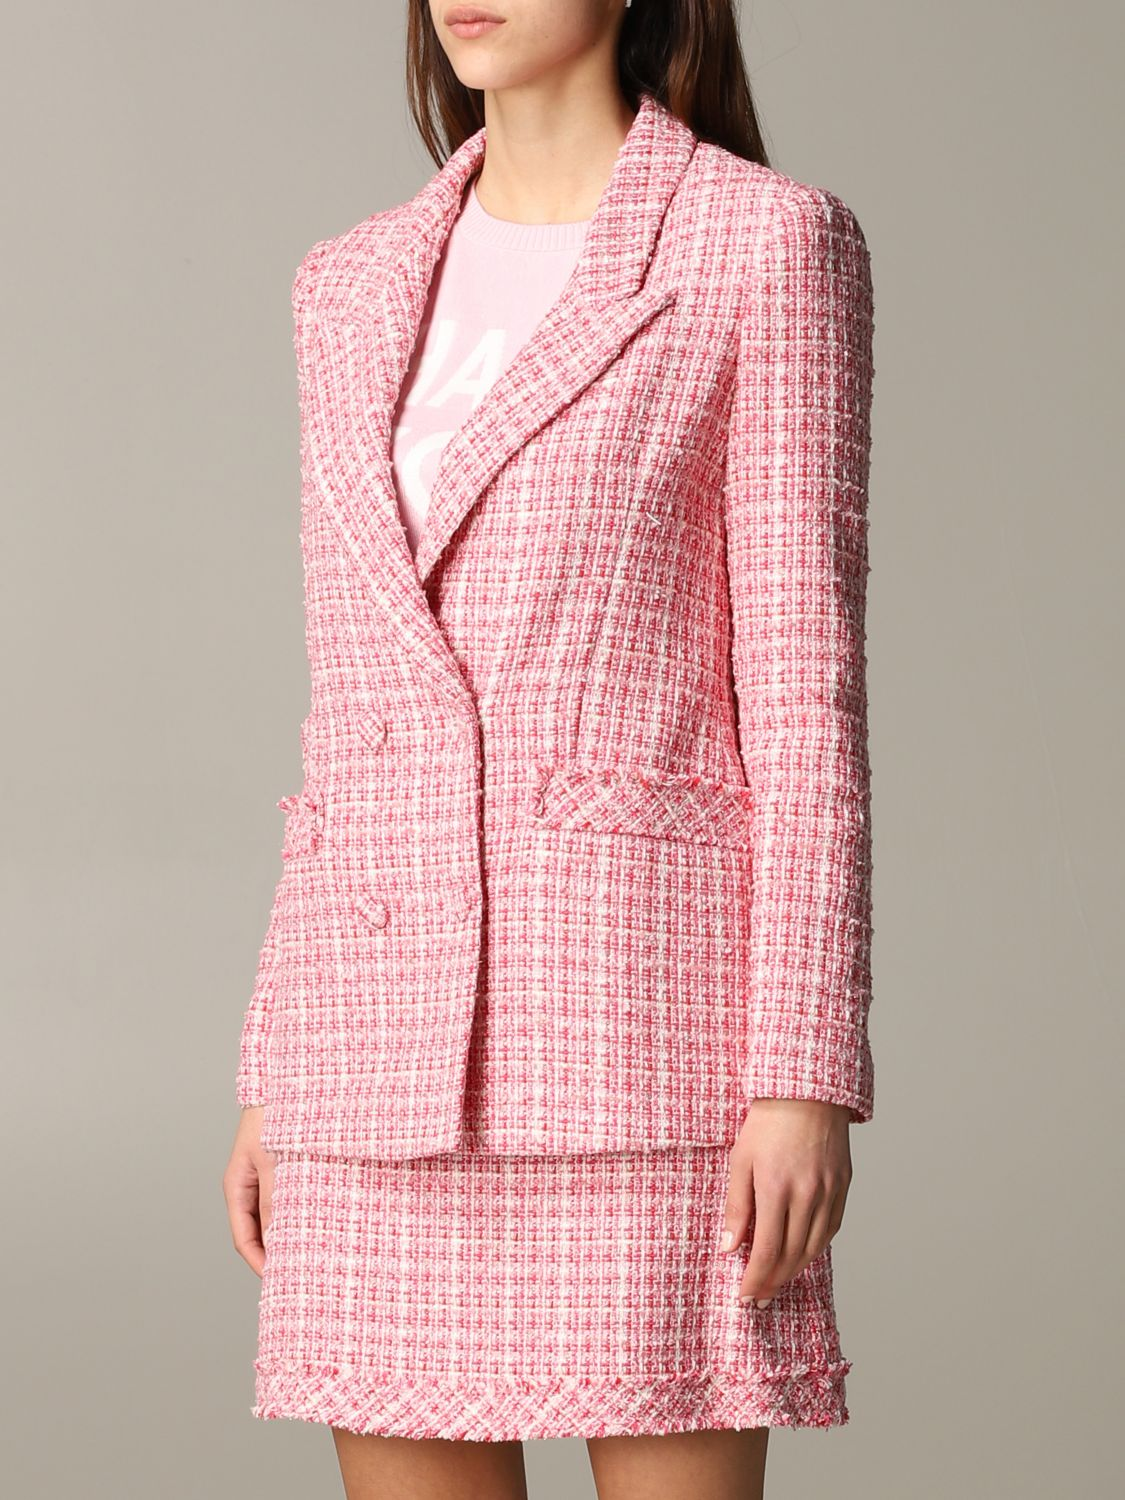 Be Blumarine double-breasted bouclé jacket pink 4